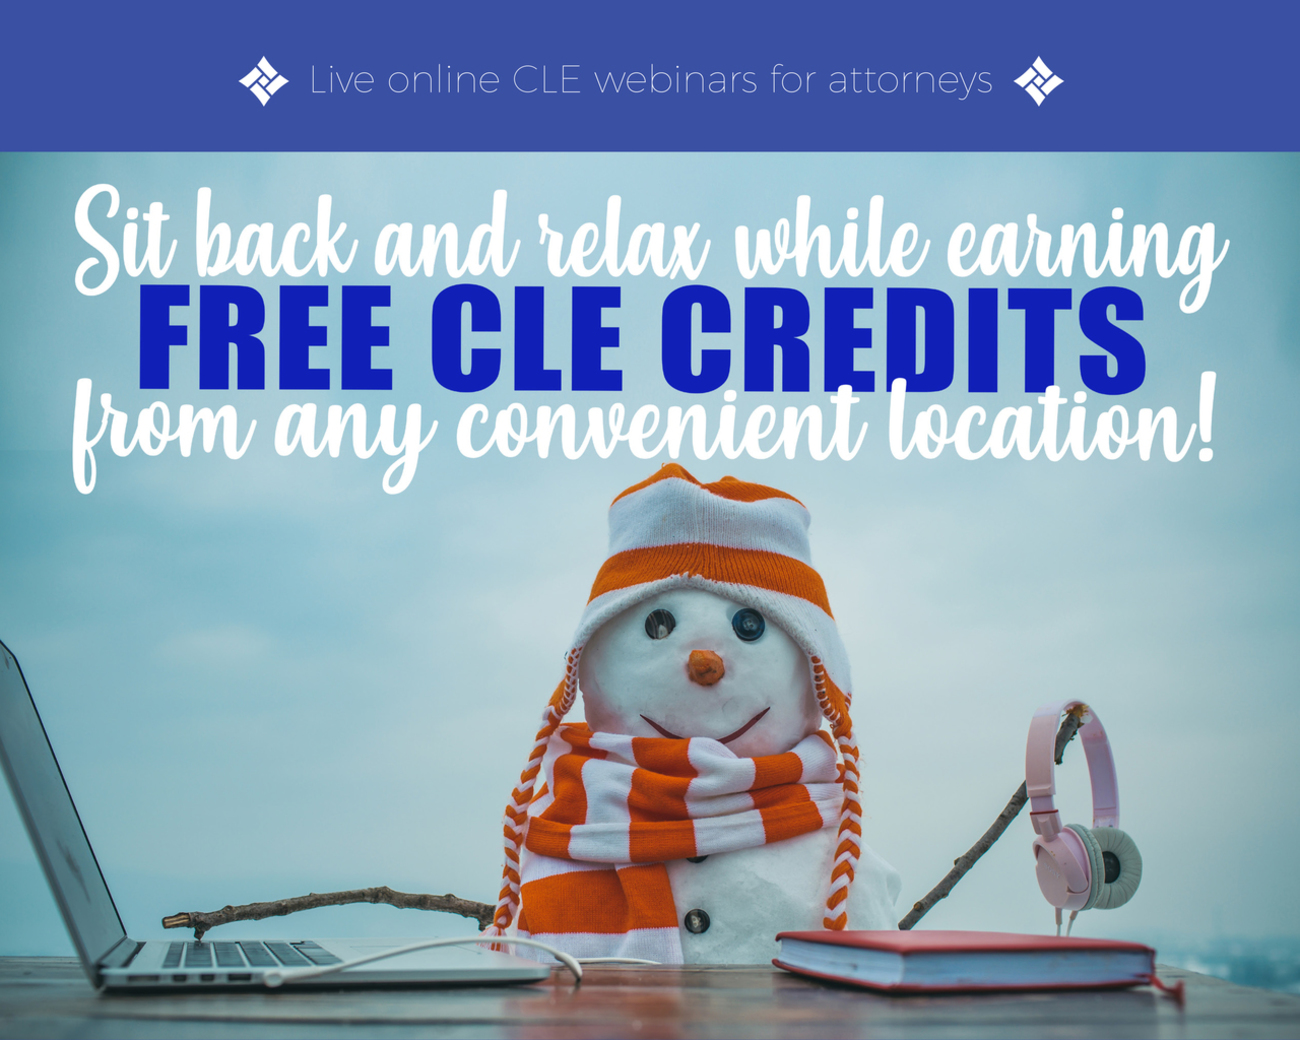 Free CLE Credits - Snowman with Laptop and Headphones